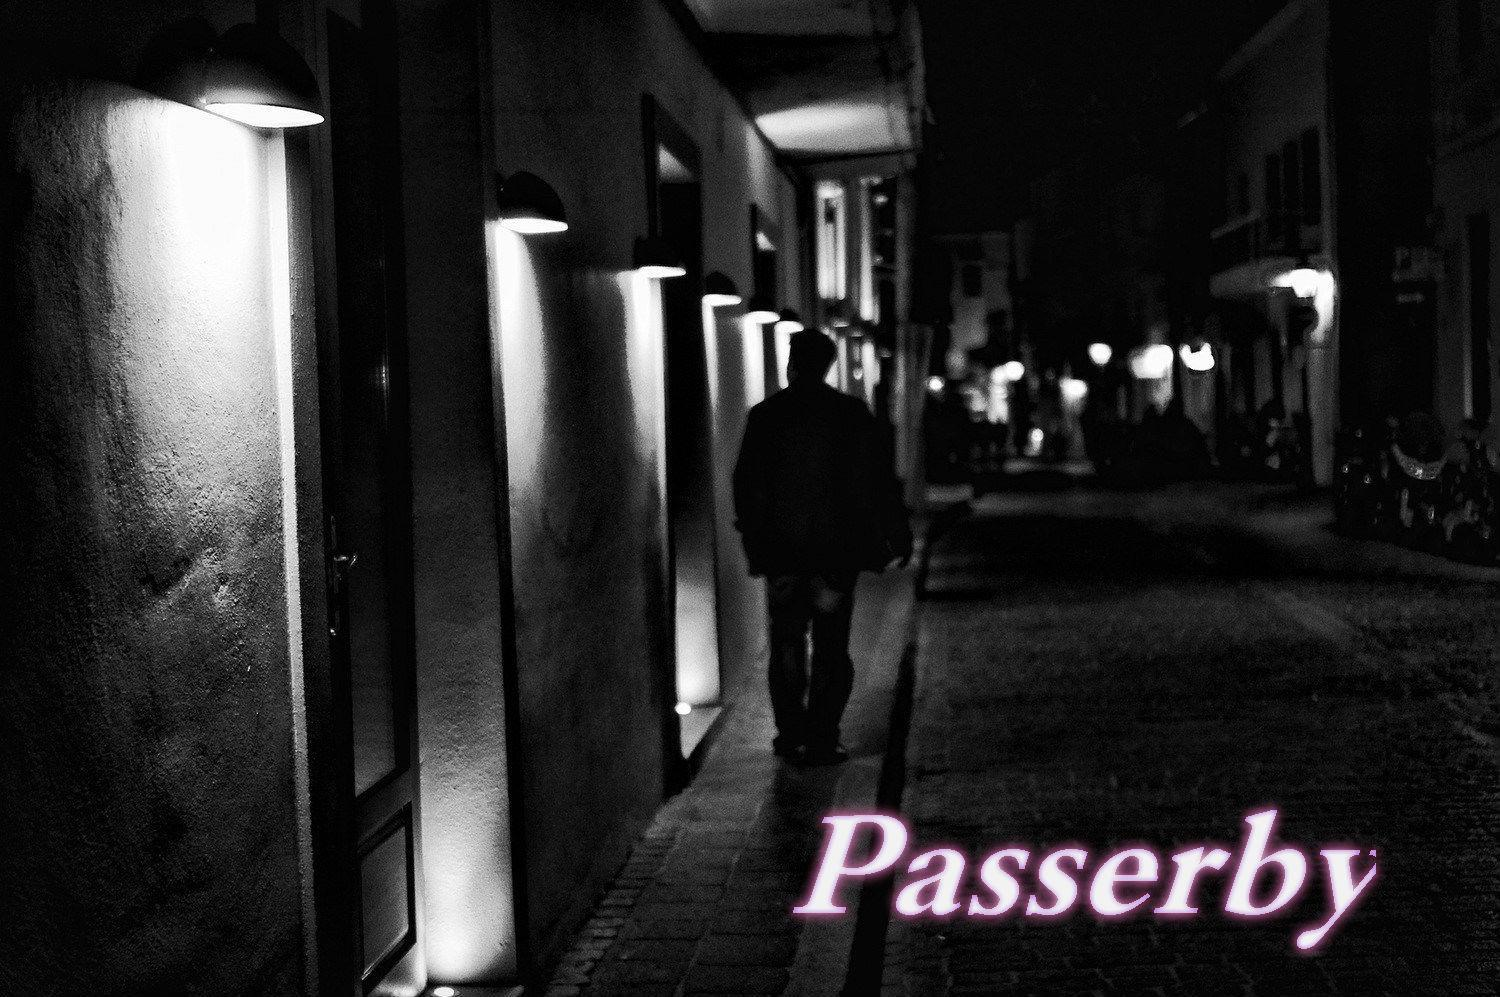 Book 1, Chapter 6; Passerby